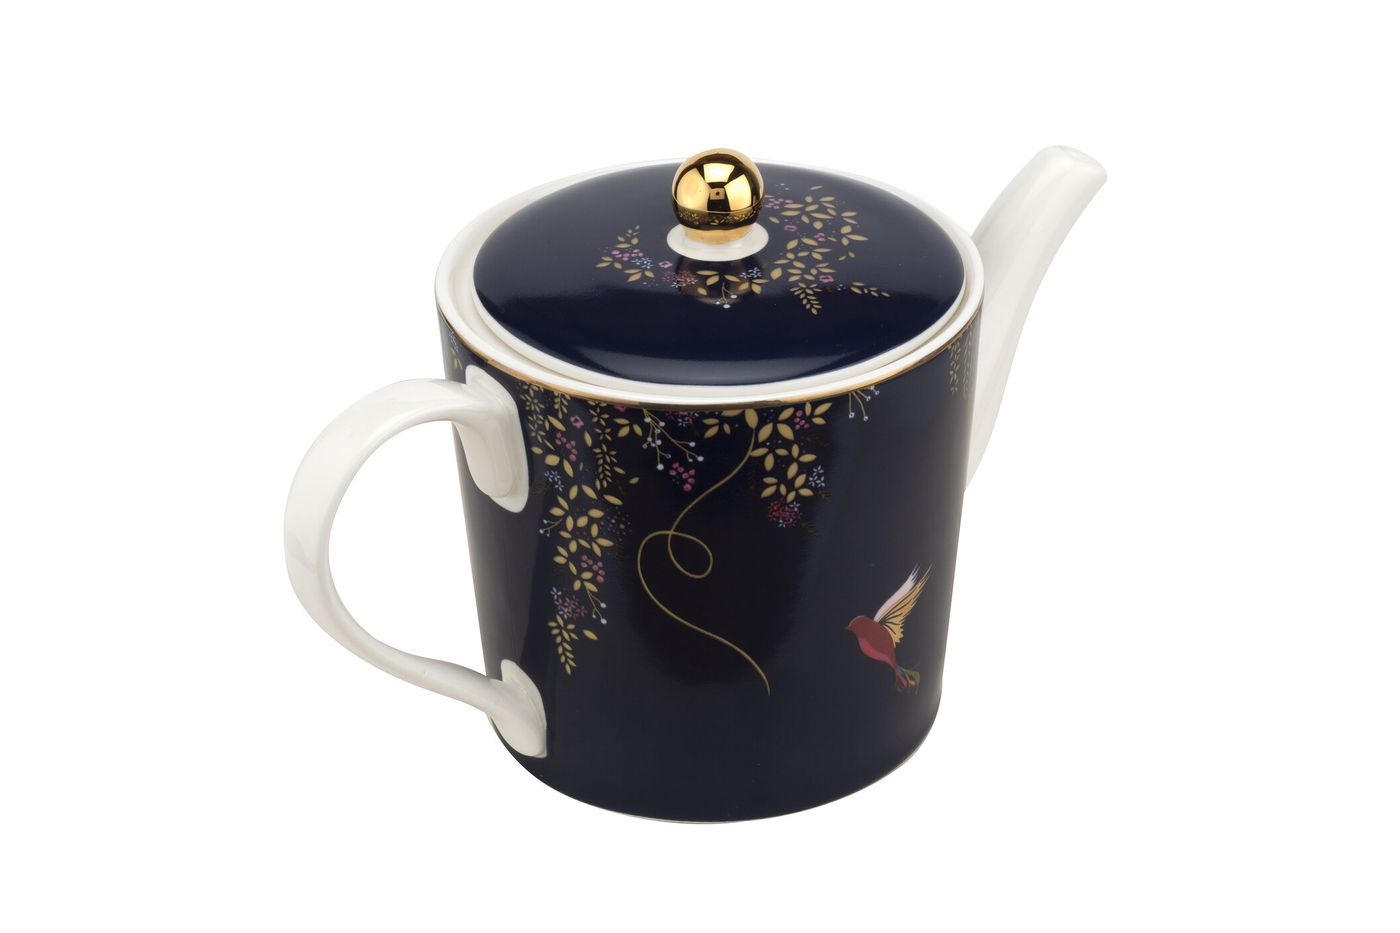 Sara Miller London for Portmeirion Chelsea Collection Teapot 0.5l thumb 2